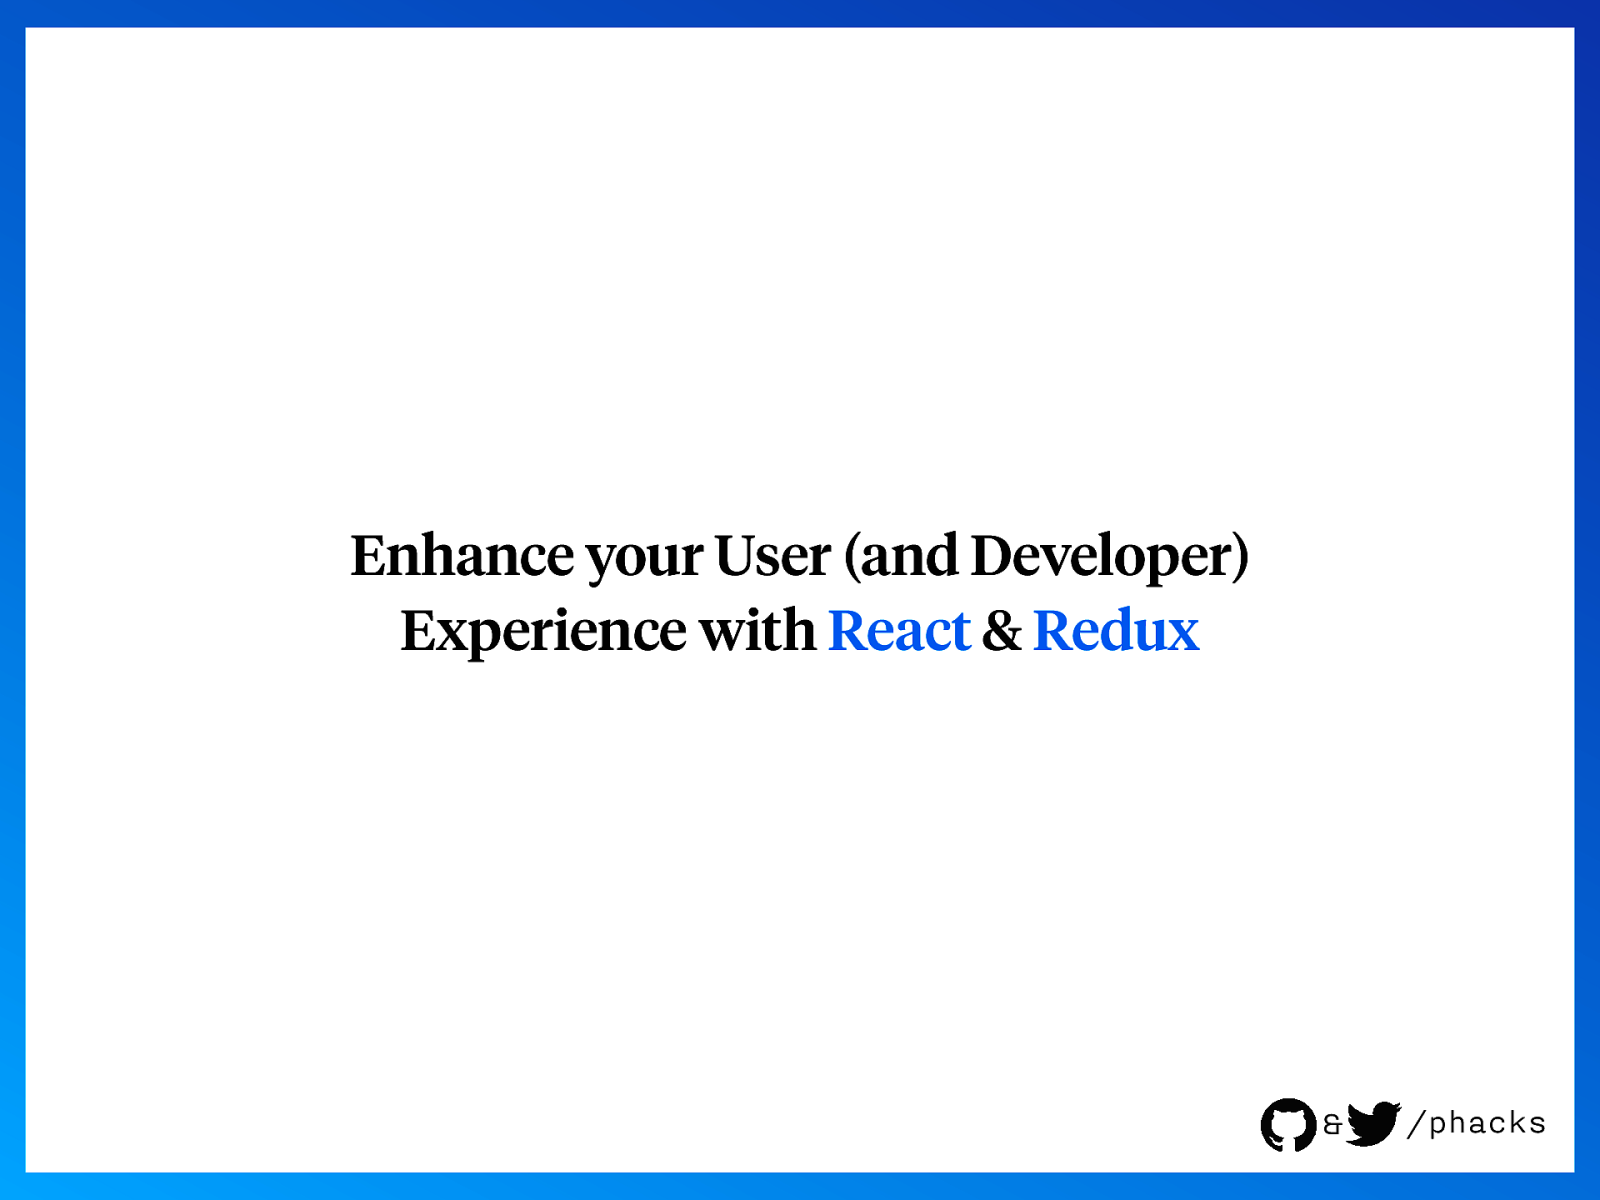 Enhance your User (and Developer) Experience with React & Redux